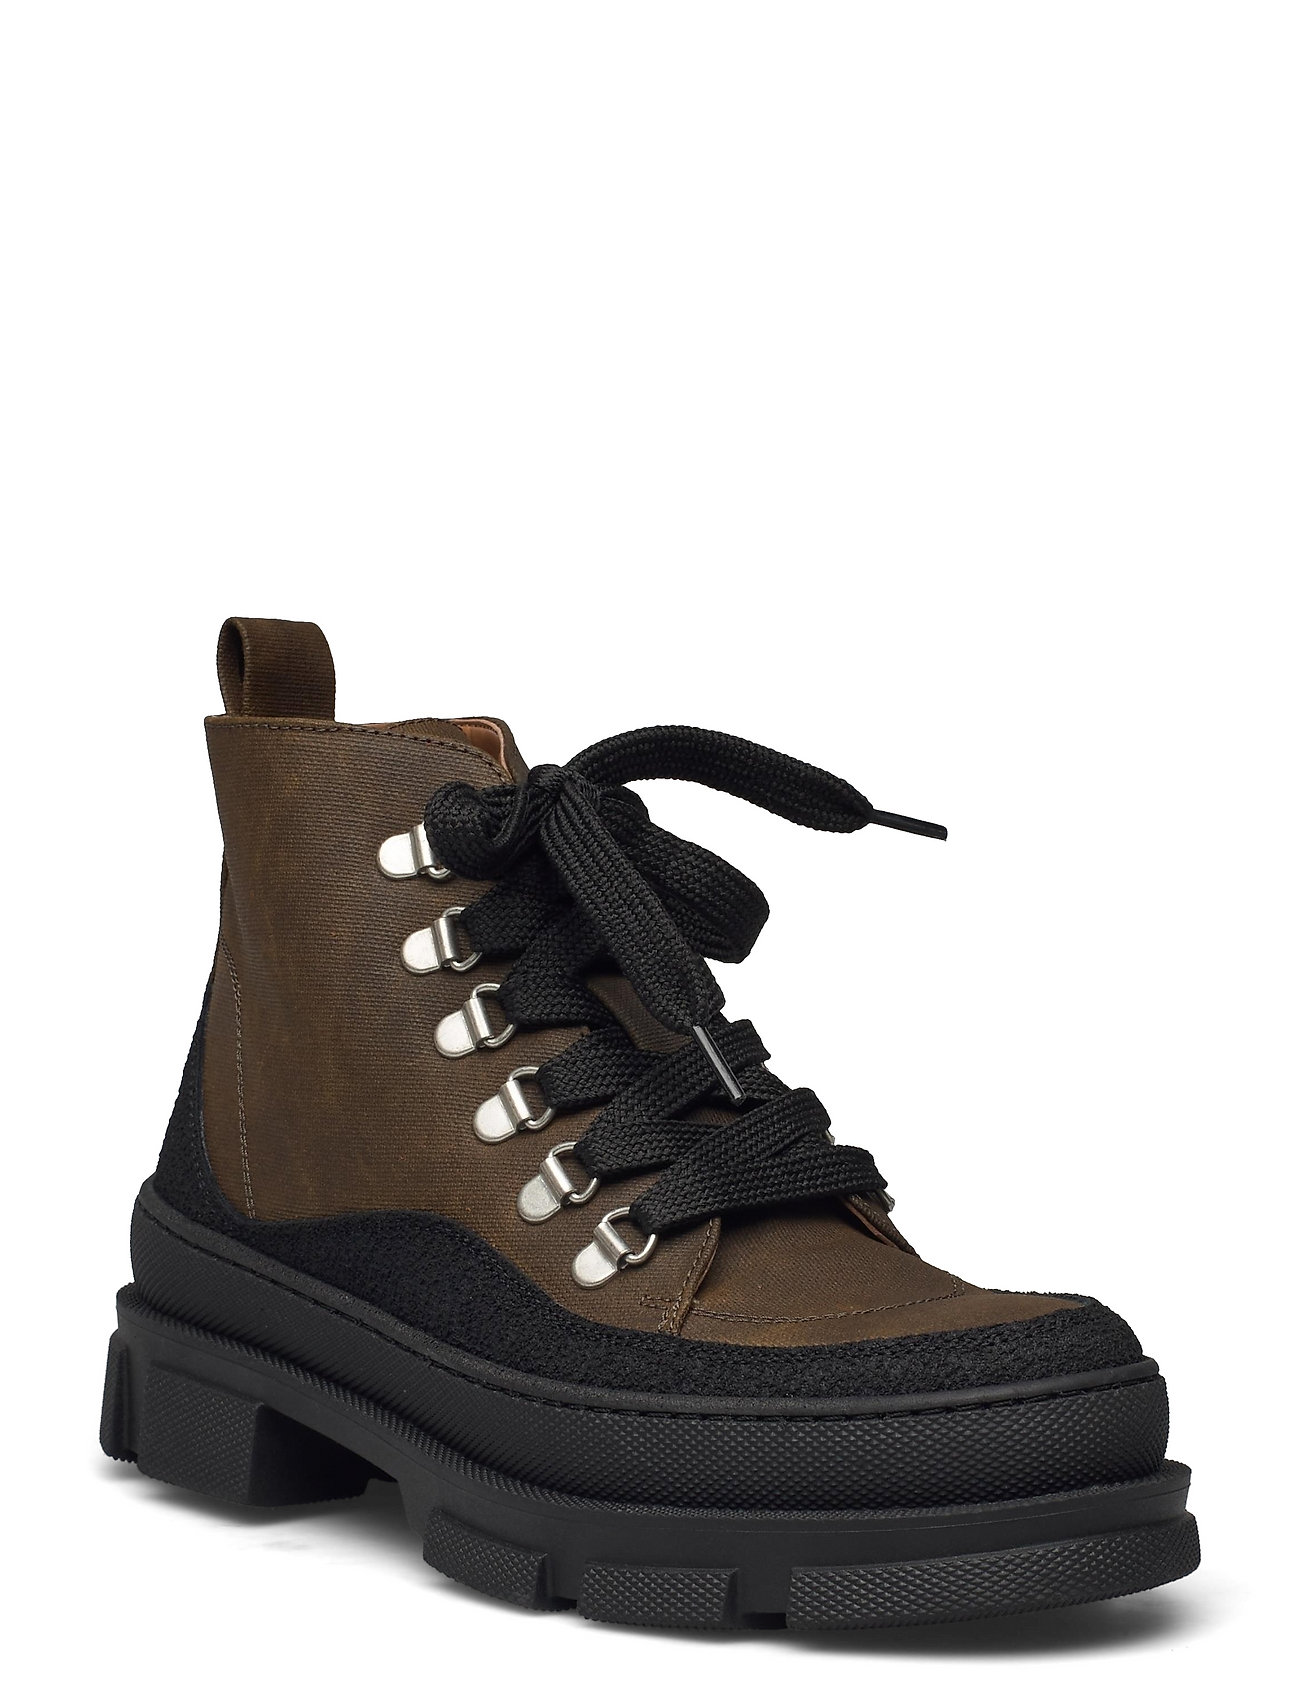 Boots - Flat - With Laces Shoes Boots Ankle Boots Ankle Boot - Flat Sort ANGULUS